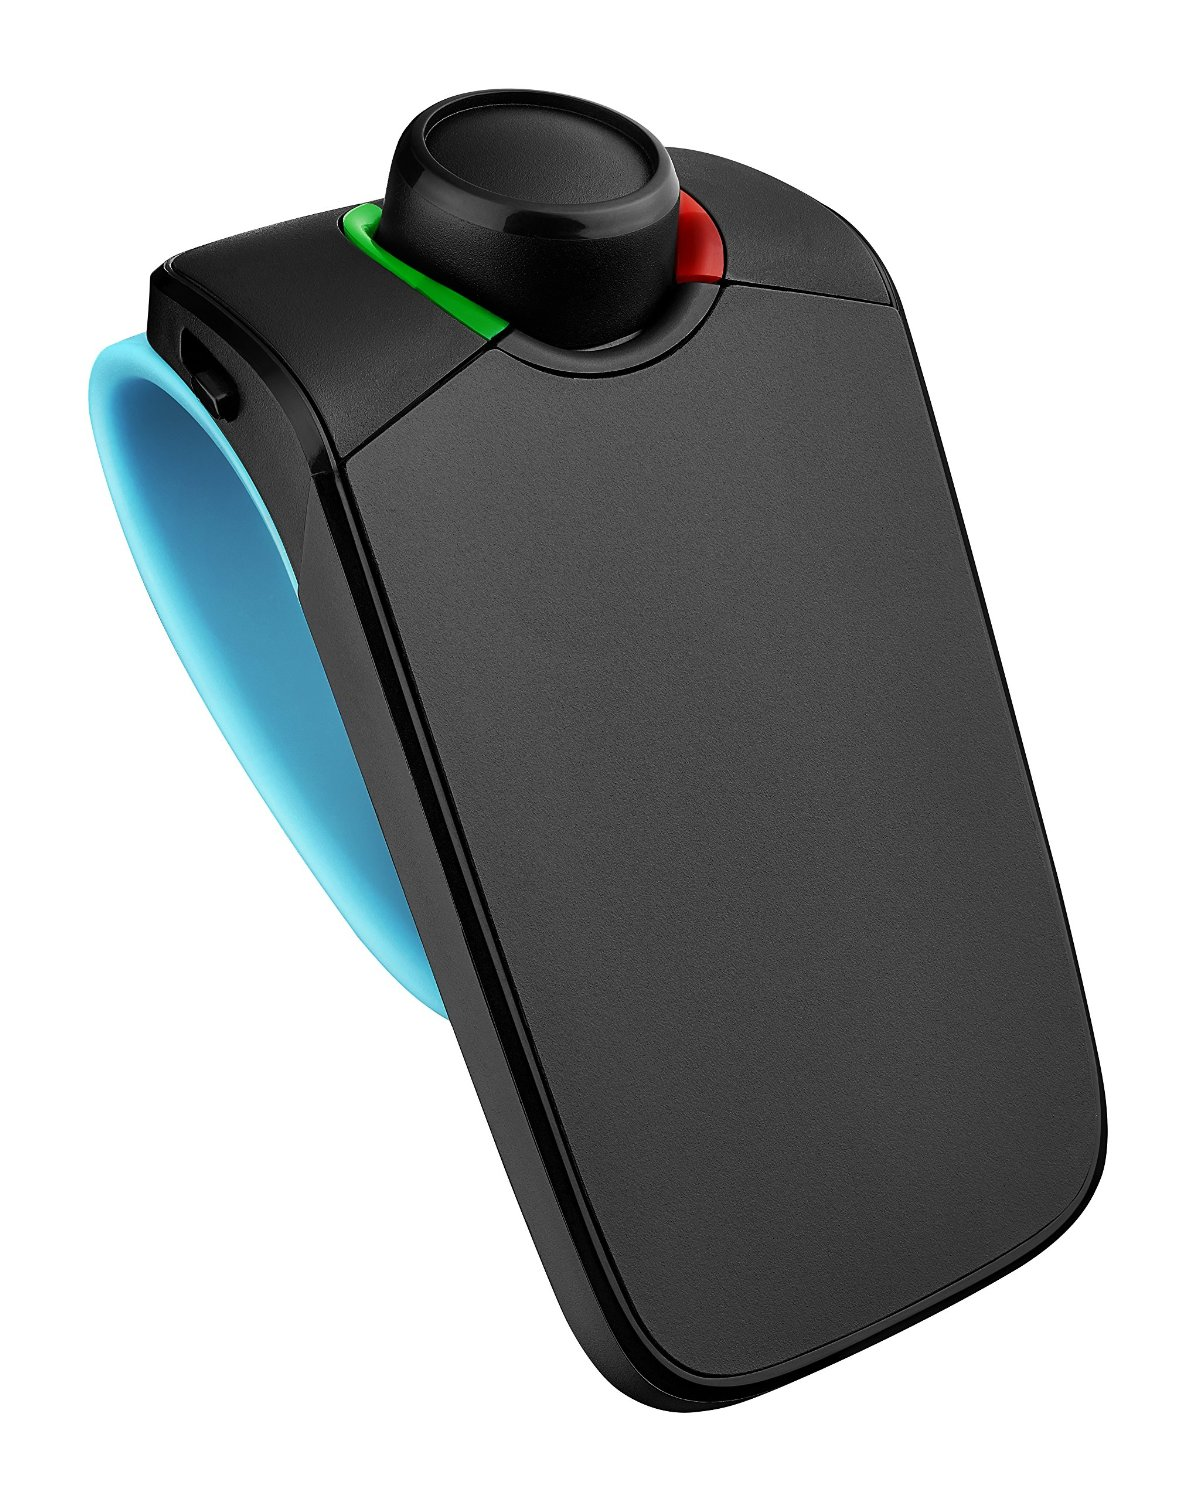 Parrot Minikit Neo 2 HD - Voice controlled portable Bluetooth hands-free kit with HD Voice, Blue